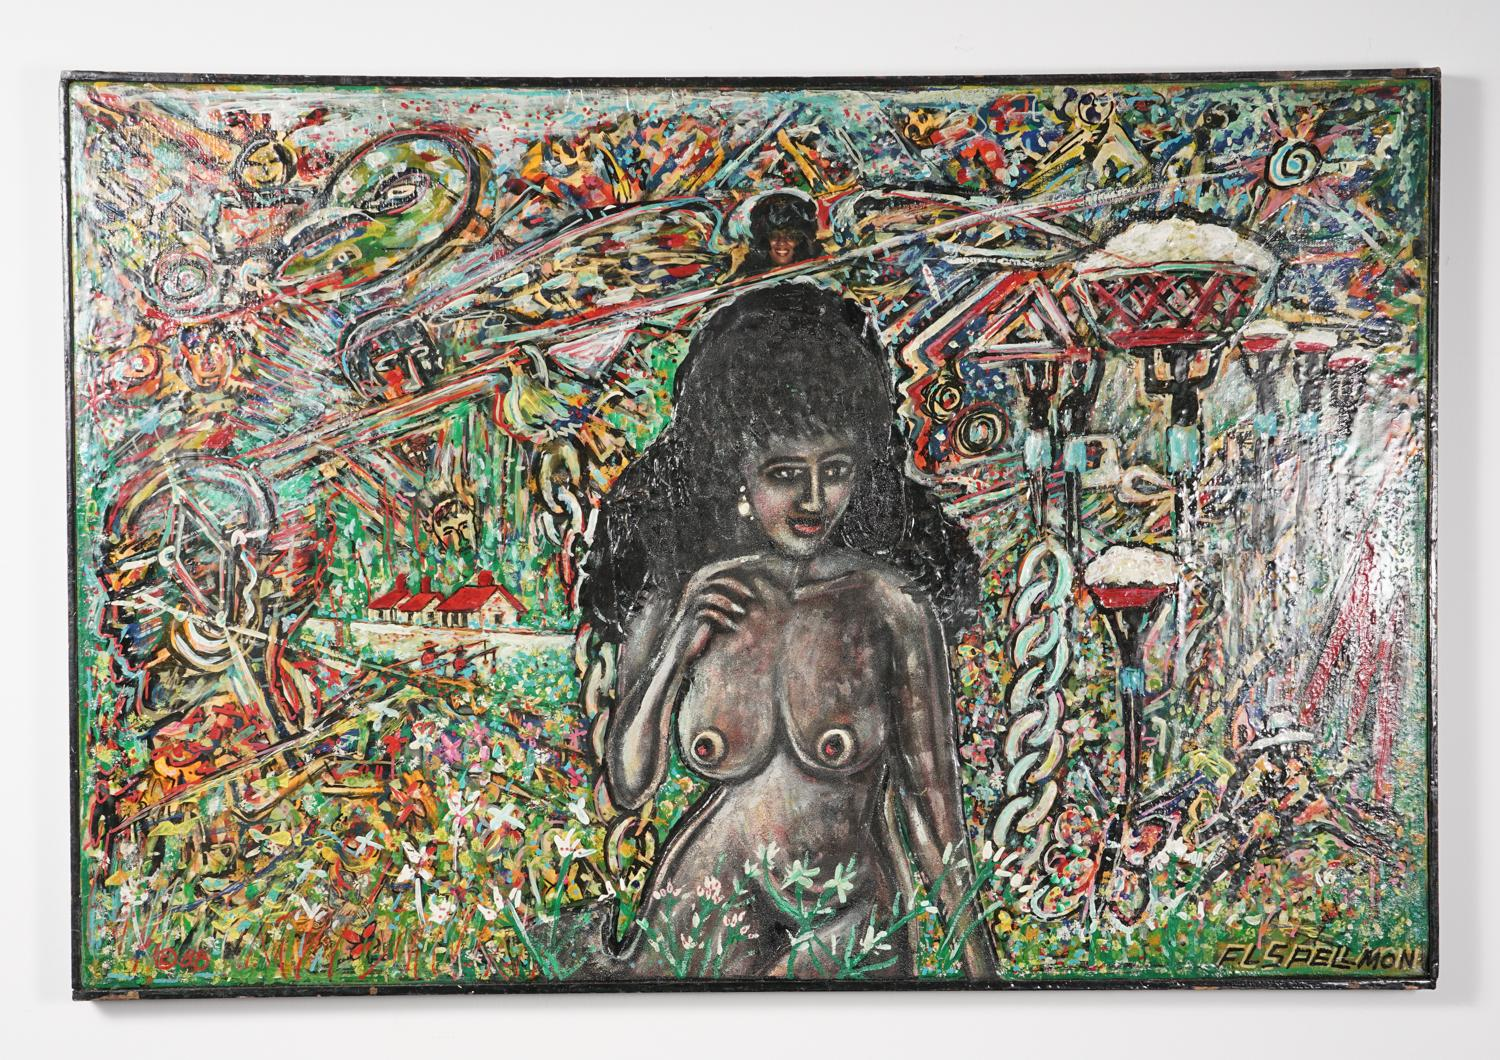 Doc Spellmon (American 1925-2008,) Removed fromAfrica - Portrait of Yvette, Mixed Media, Available on iGavel Auctions until February 18, 2021